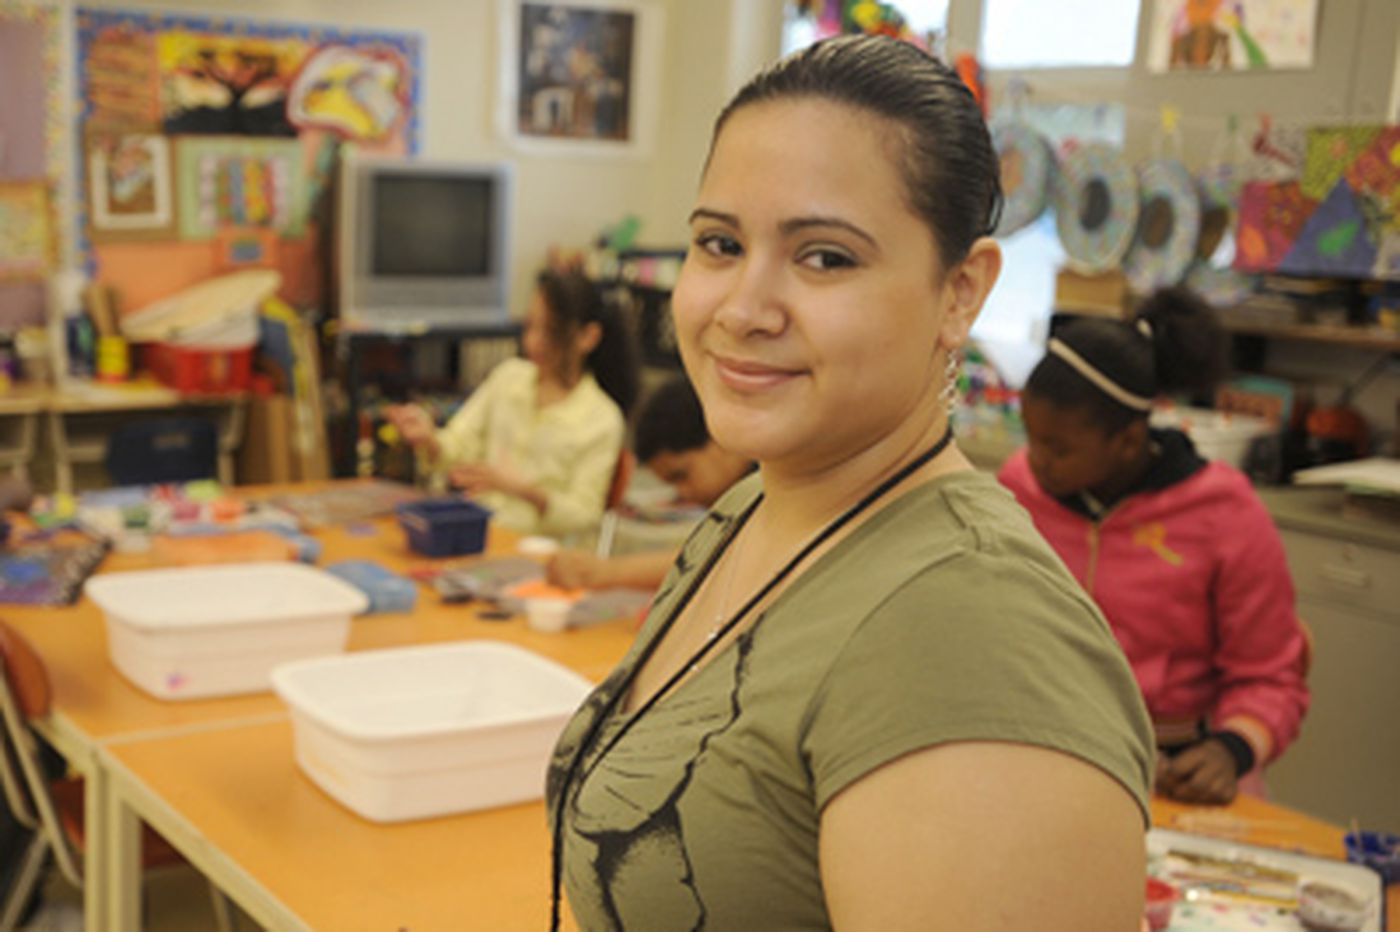 Camden's Teacher of the Year uses art to engage students in learning